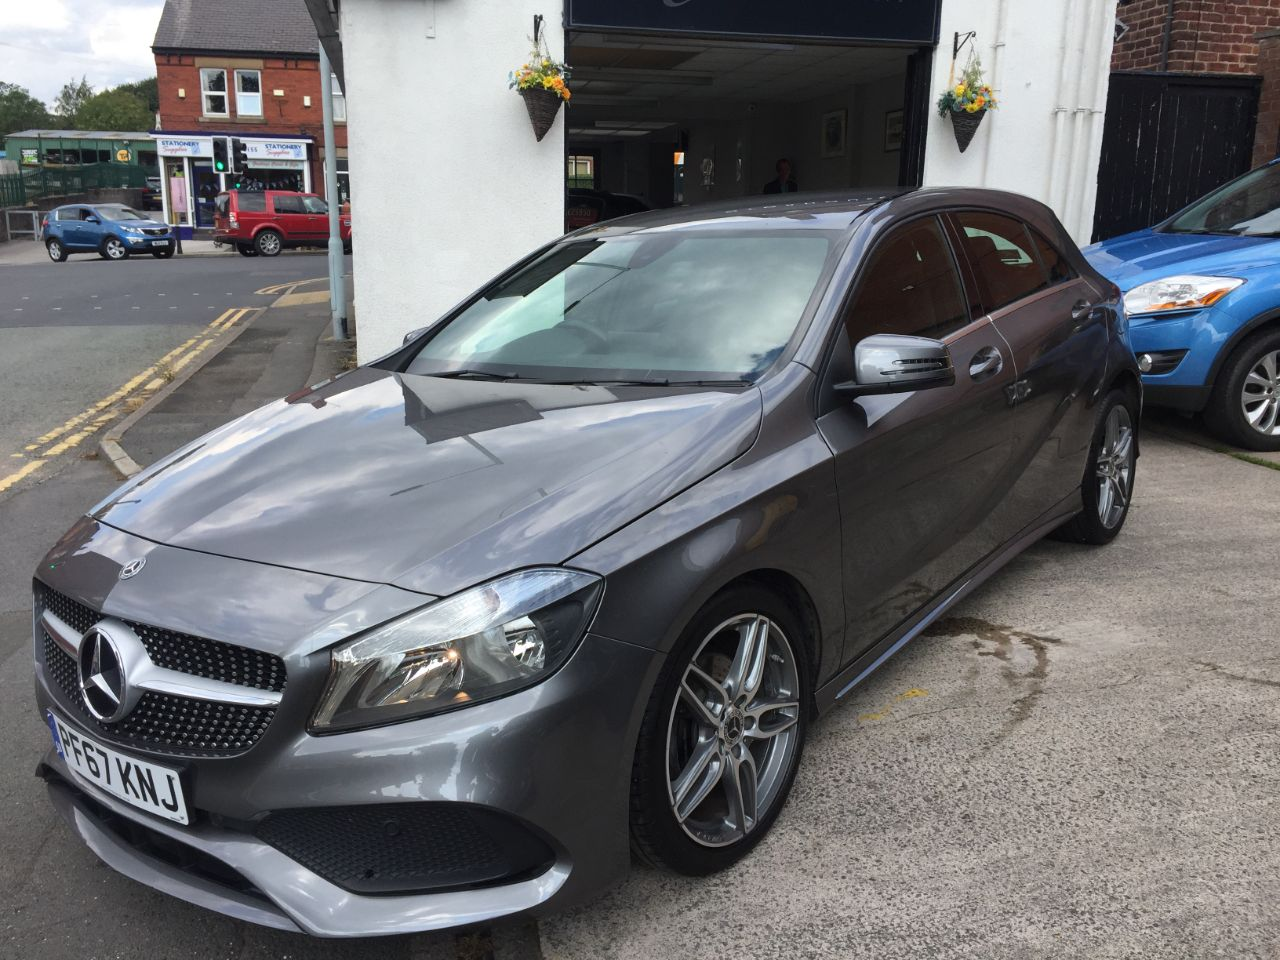 Mercedes-Benz A Class 1.6 A160 AMG Line 5dr Hatchback Petrol Grey at Motorhouse Cheshire Stockport